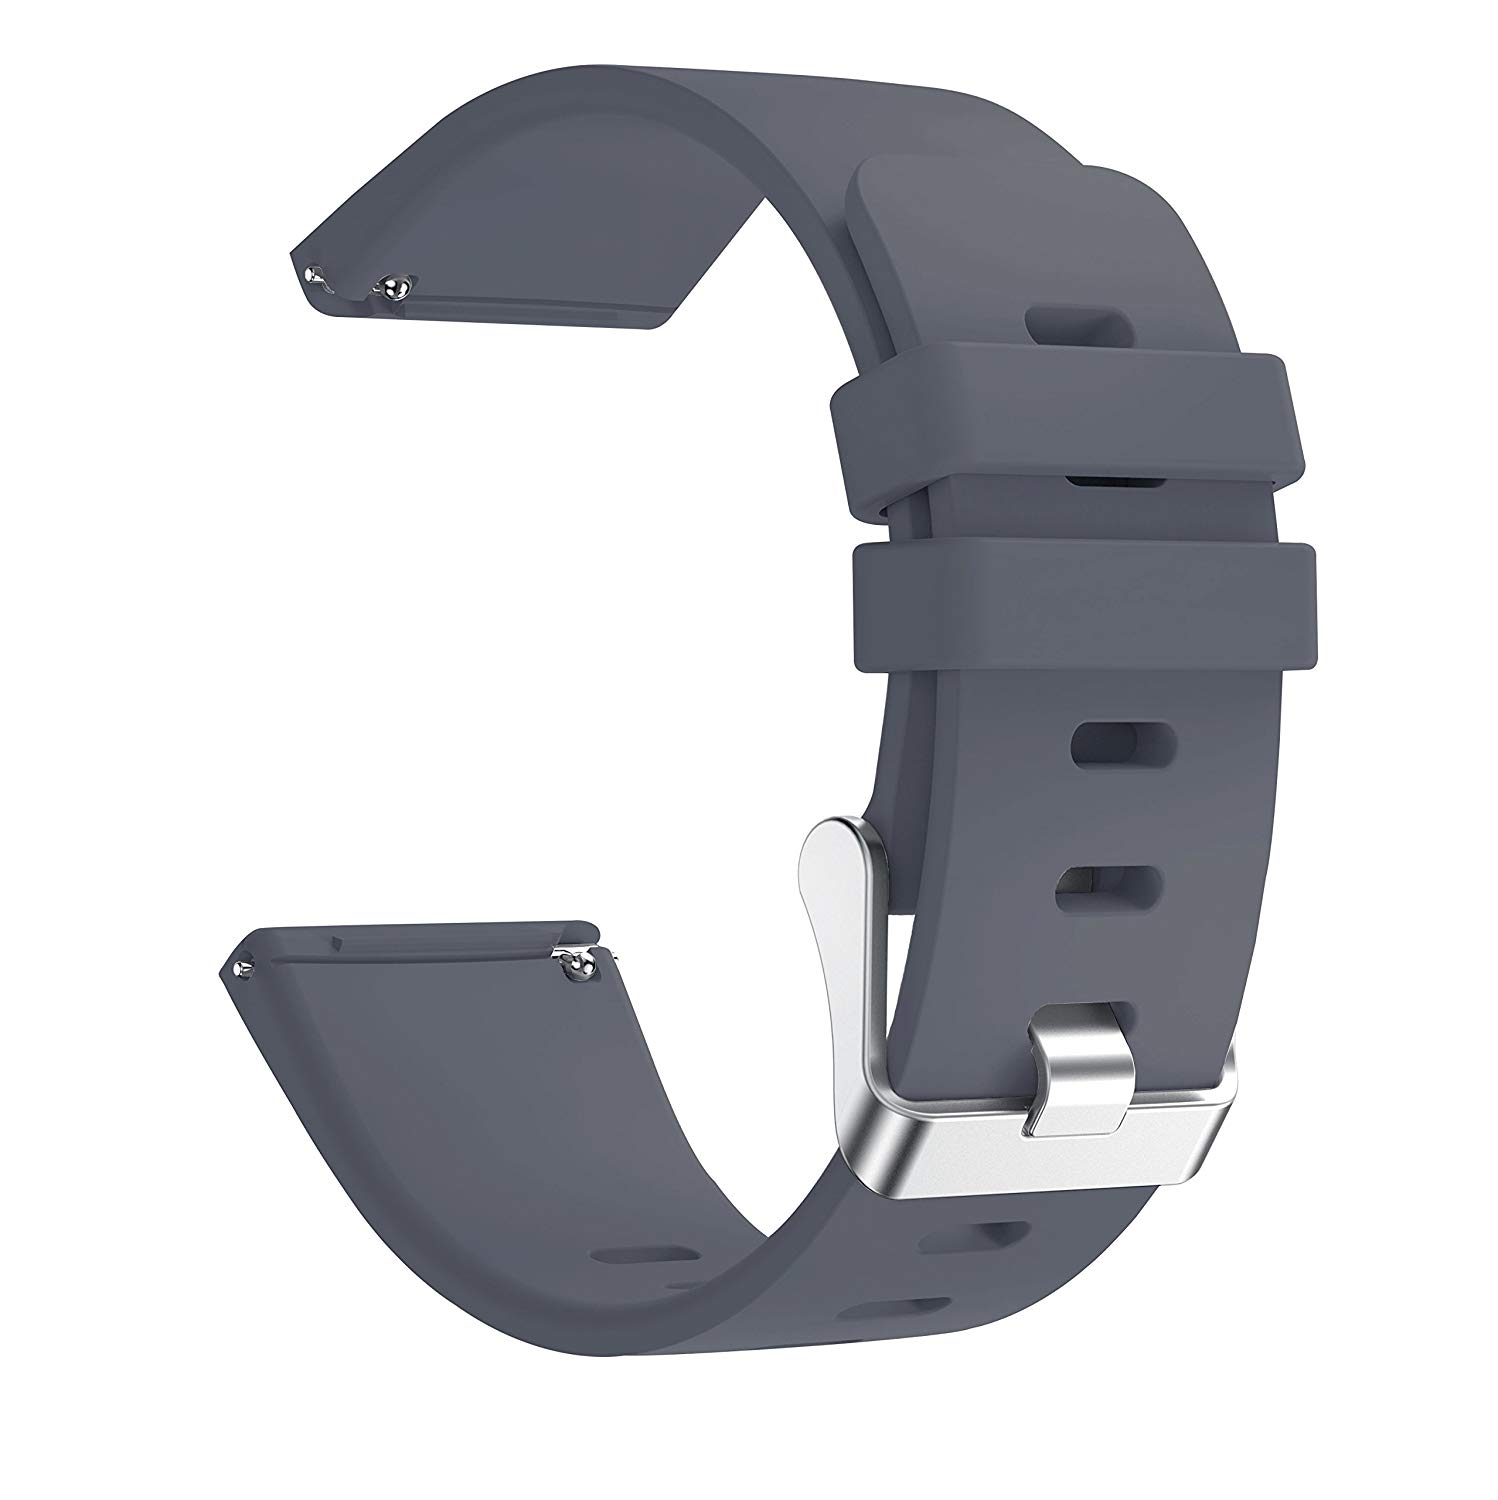 For Fitbit Versa Tracke Replacement Strap Soft Sport Silicone Watch Band Wristband Bracelet for Fitbit Versa Smart Watch On sale 8